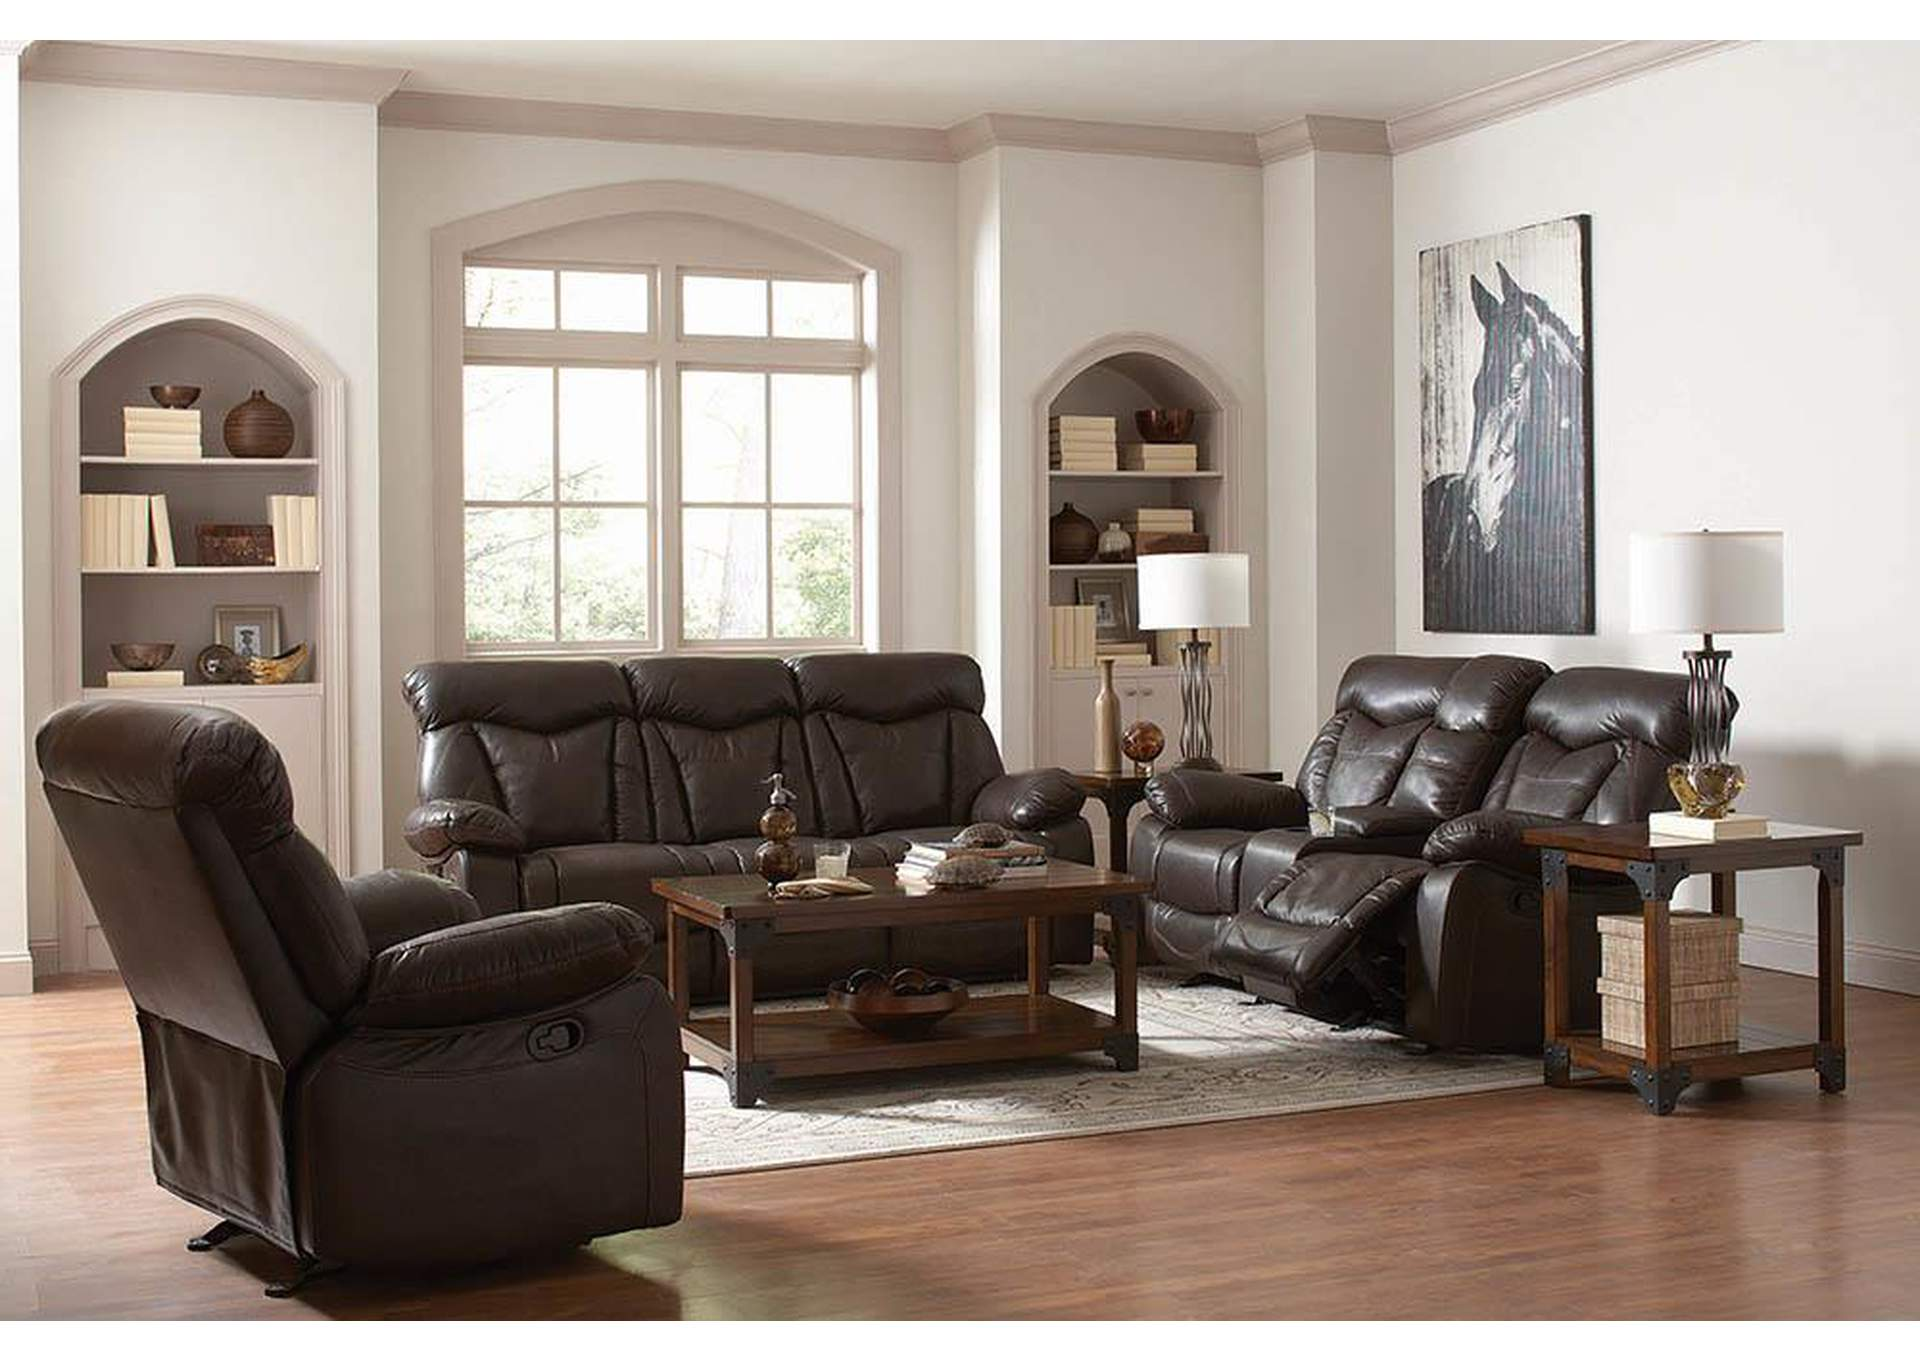 Discount Furniture Stores In Miami, Key Largo To Key West, Pembroke Pines  Reclining Sofa